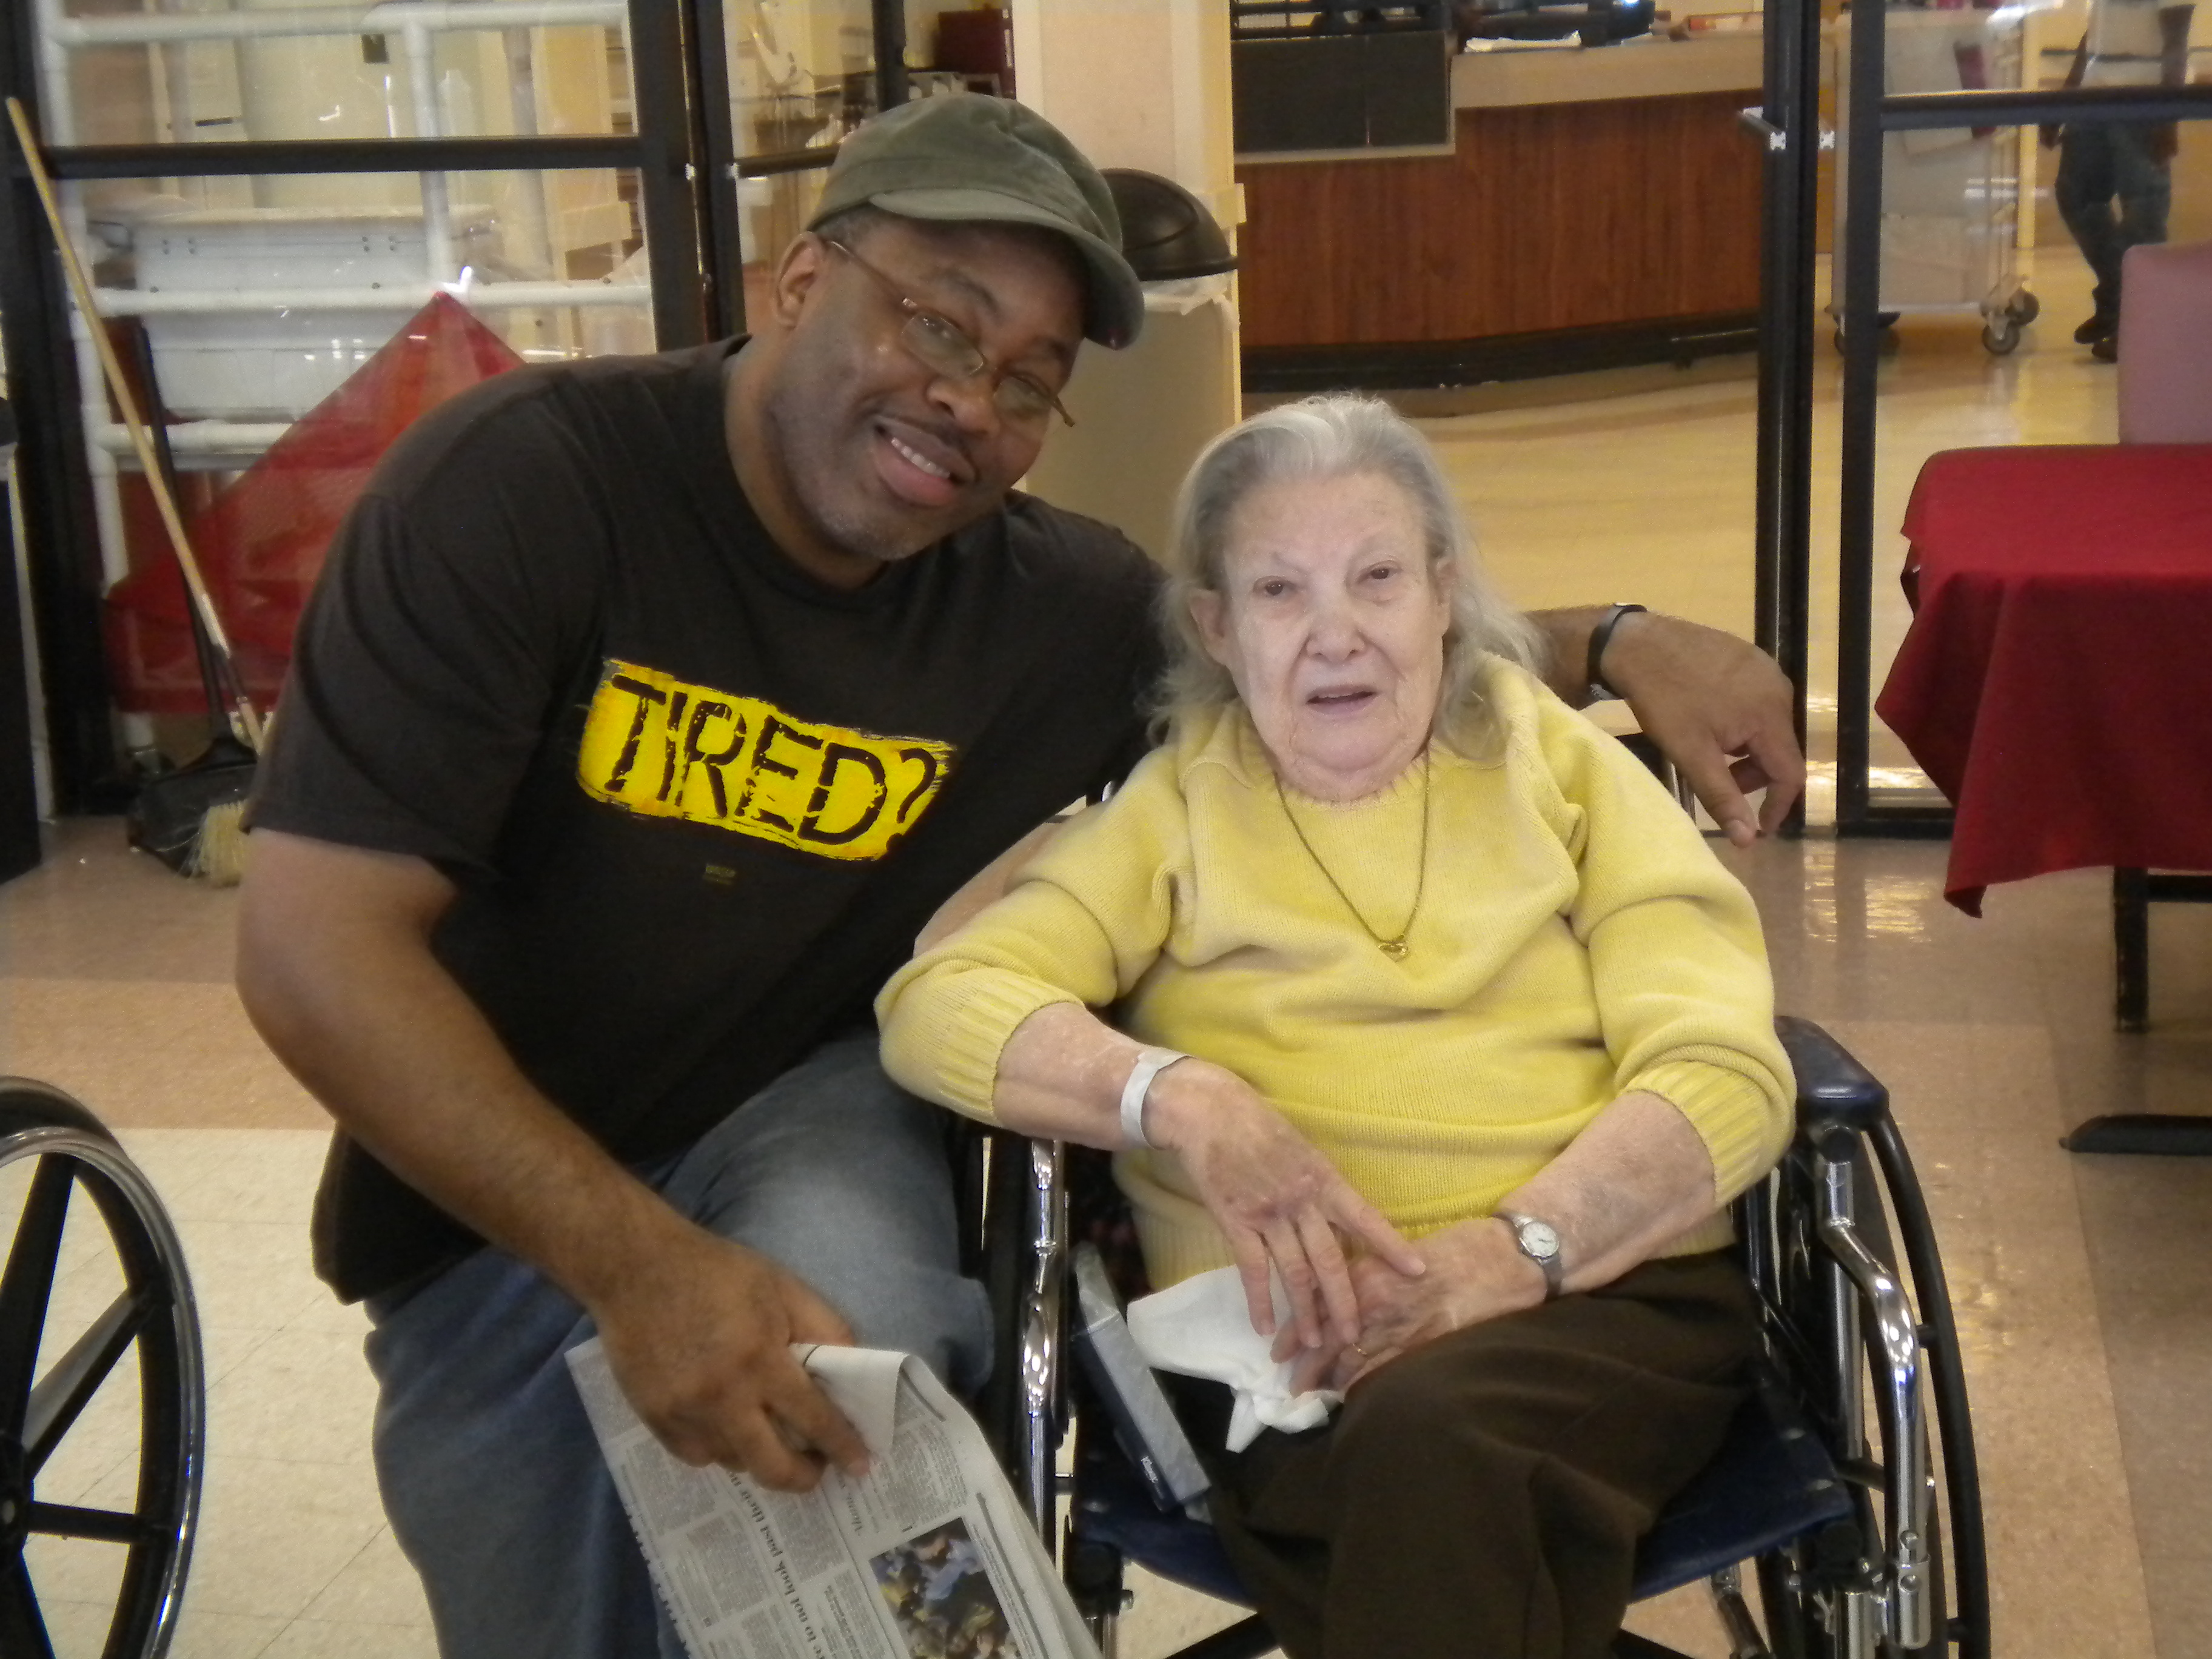 Hanging out with Ms. Trudy was a pure joy. She was funny.